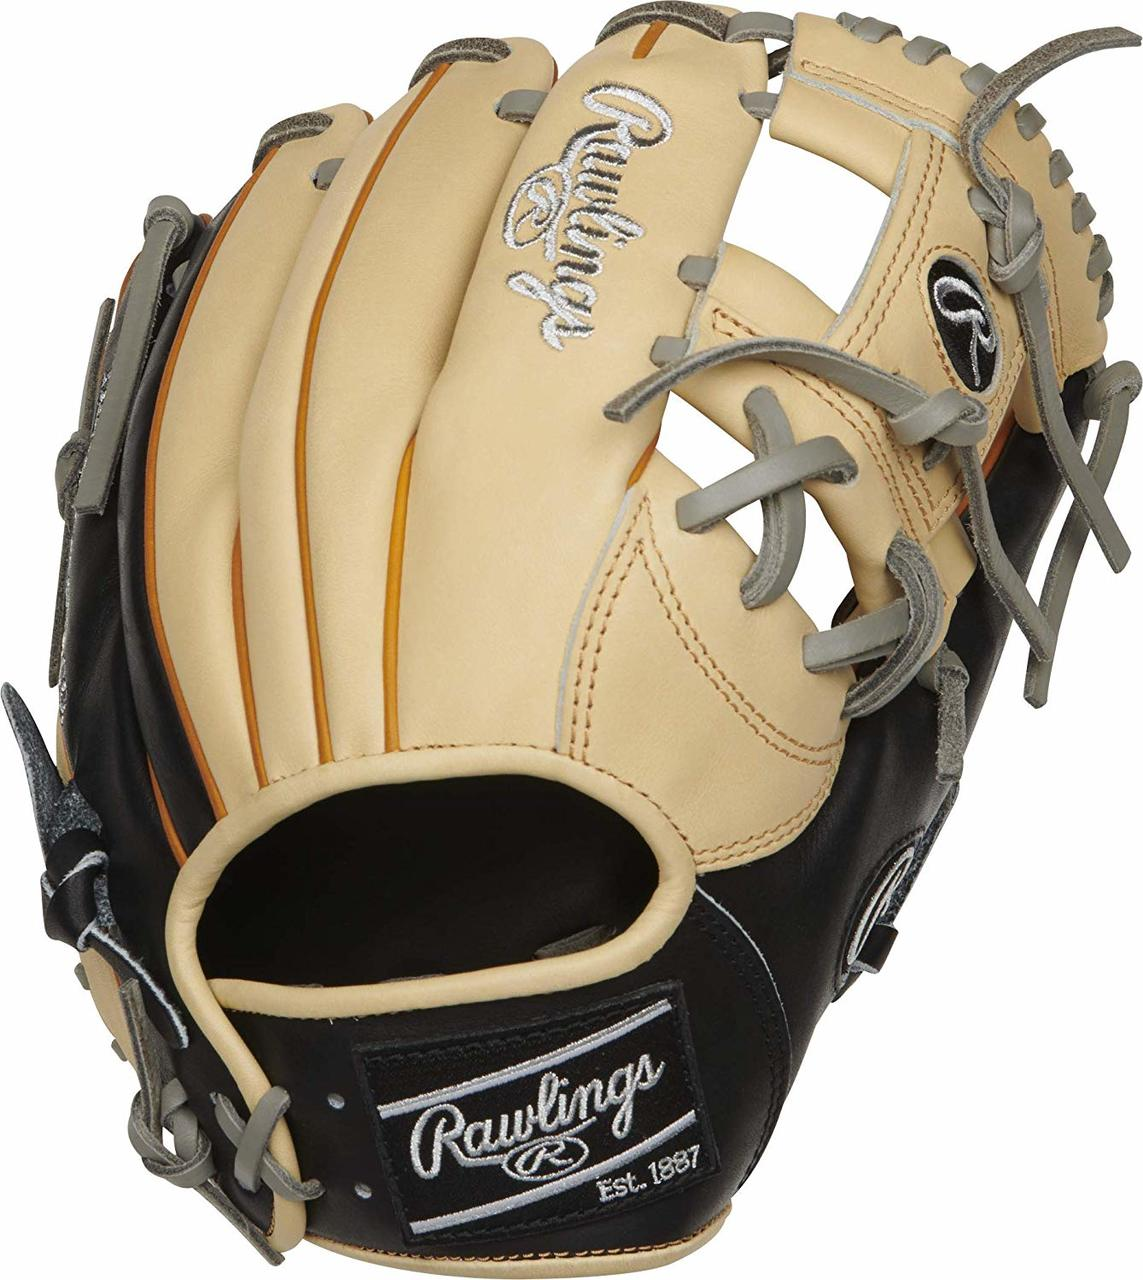 rawlings-heart-of-the-hide-baseball-glove-11-5-pronp4-2cbt-i-web-right-hand-throw PRONP4-2CBT-RightHandThrow  083321598814 Crafted from the top of the line ultra-premium steer hide leather